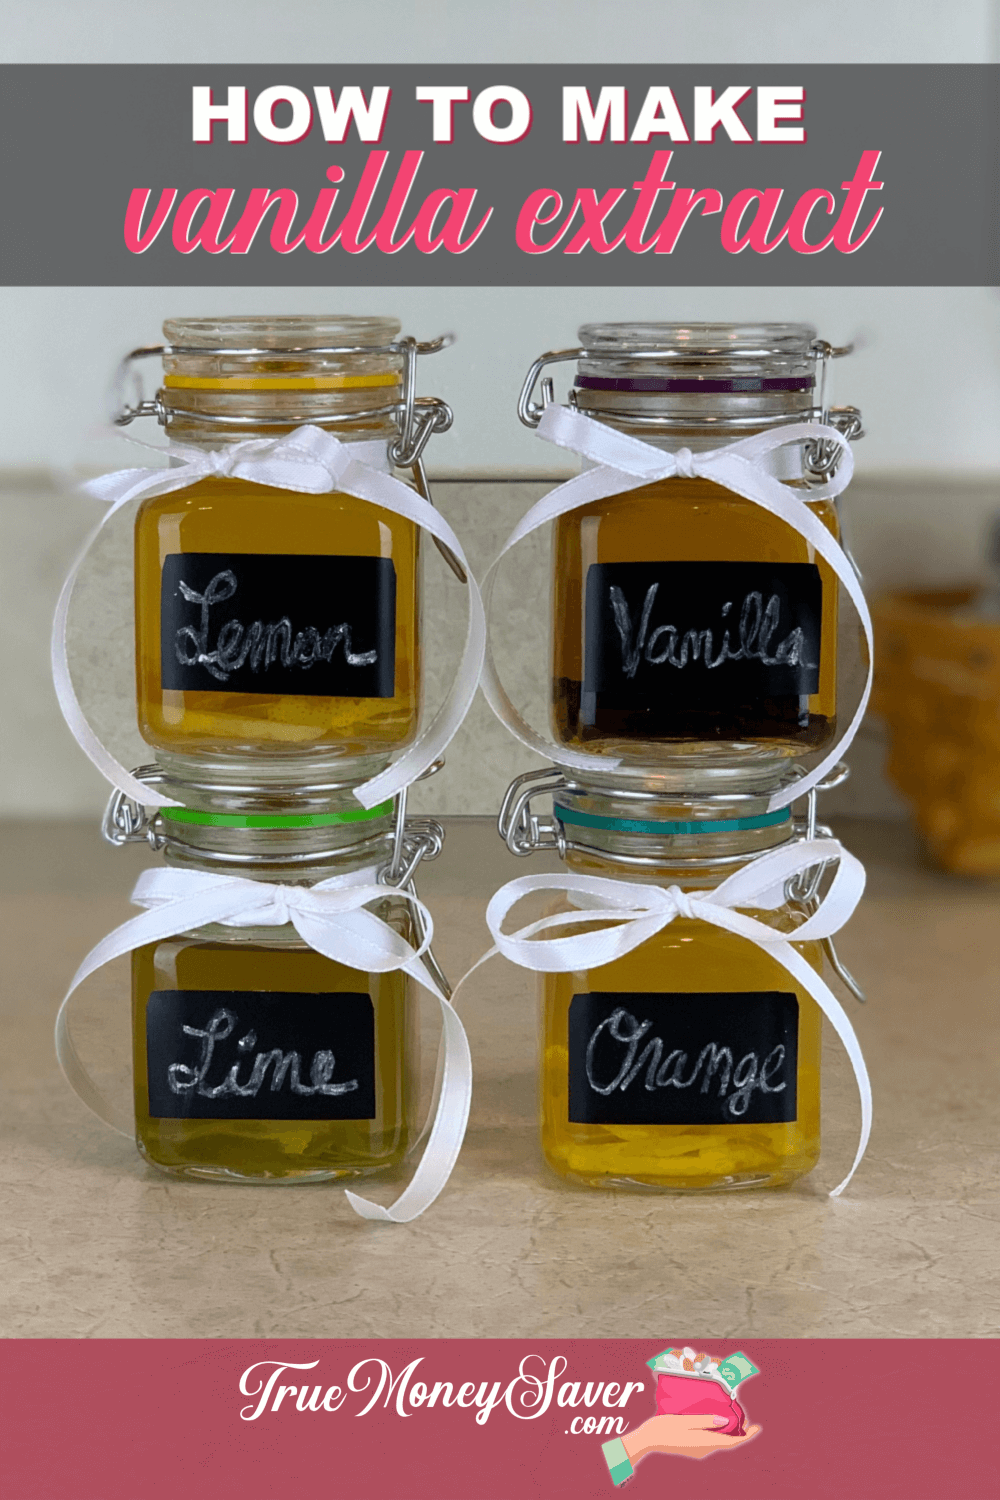 homemade extracts recipes